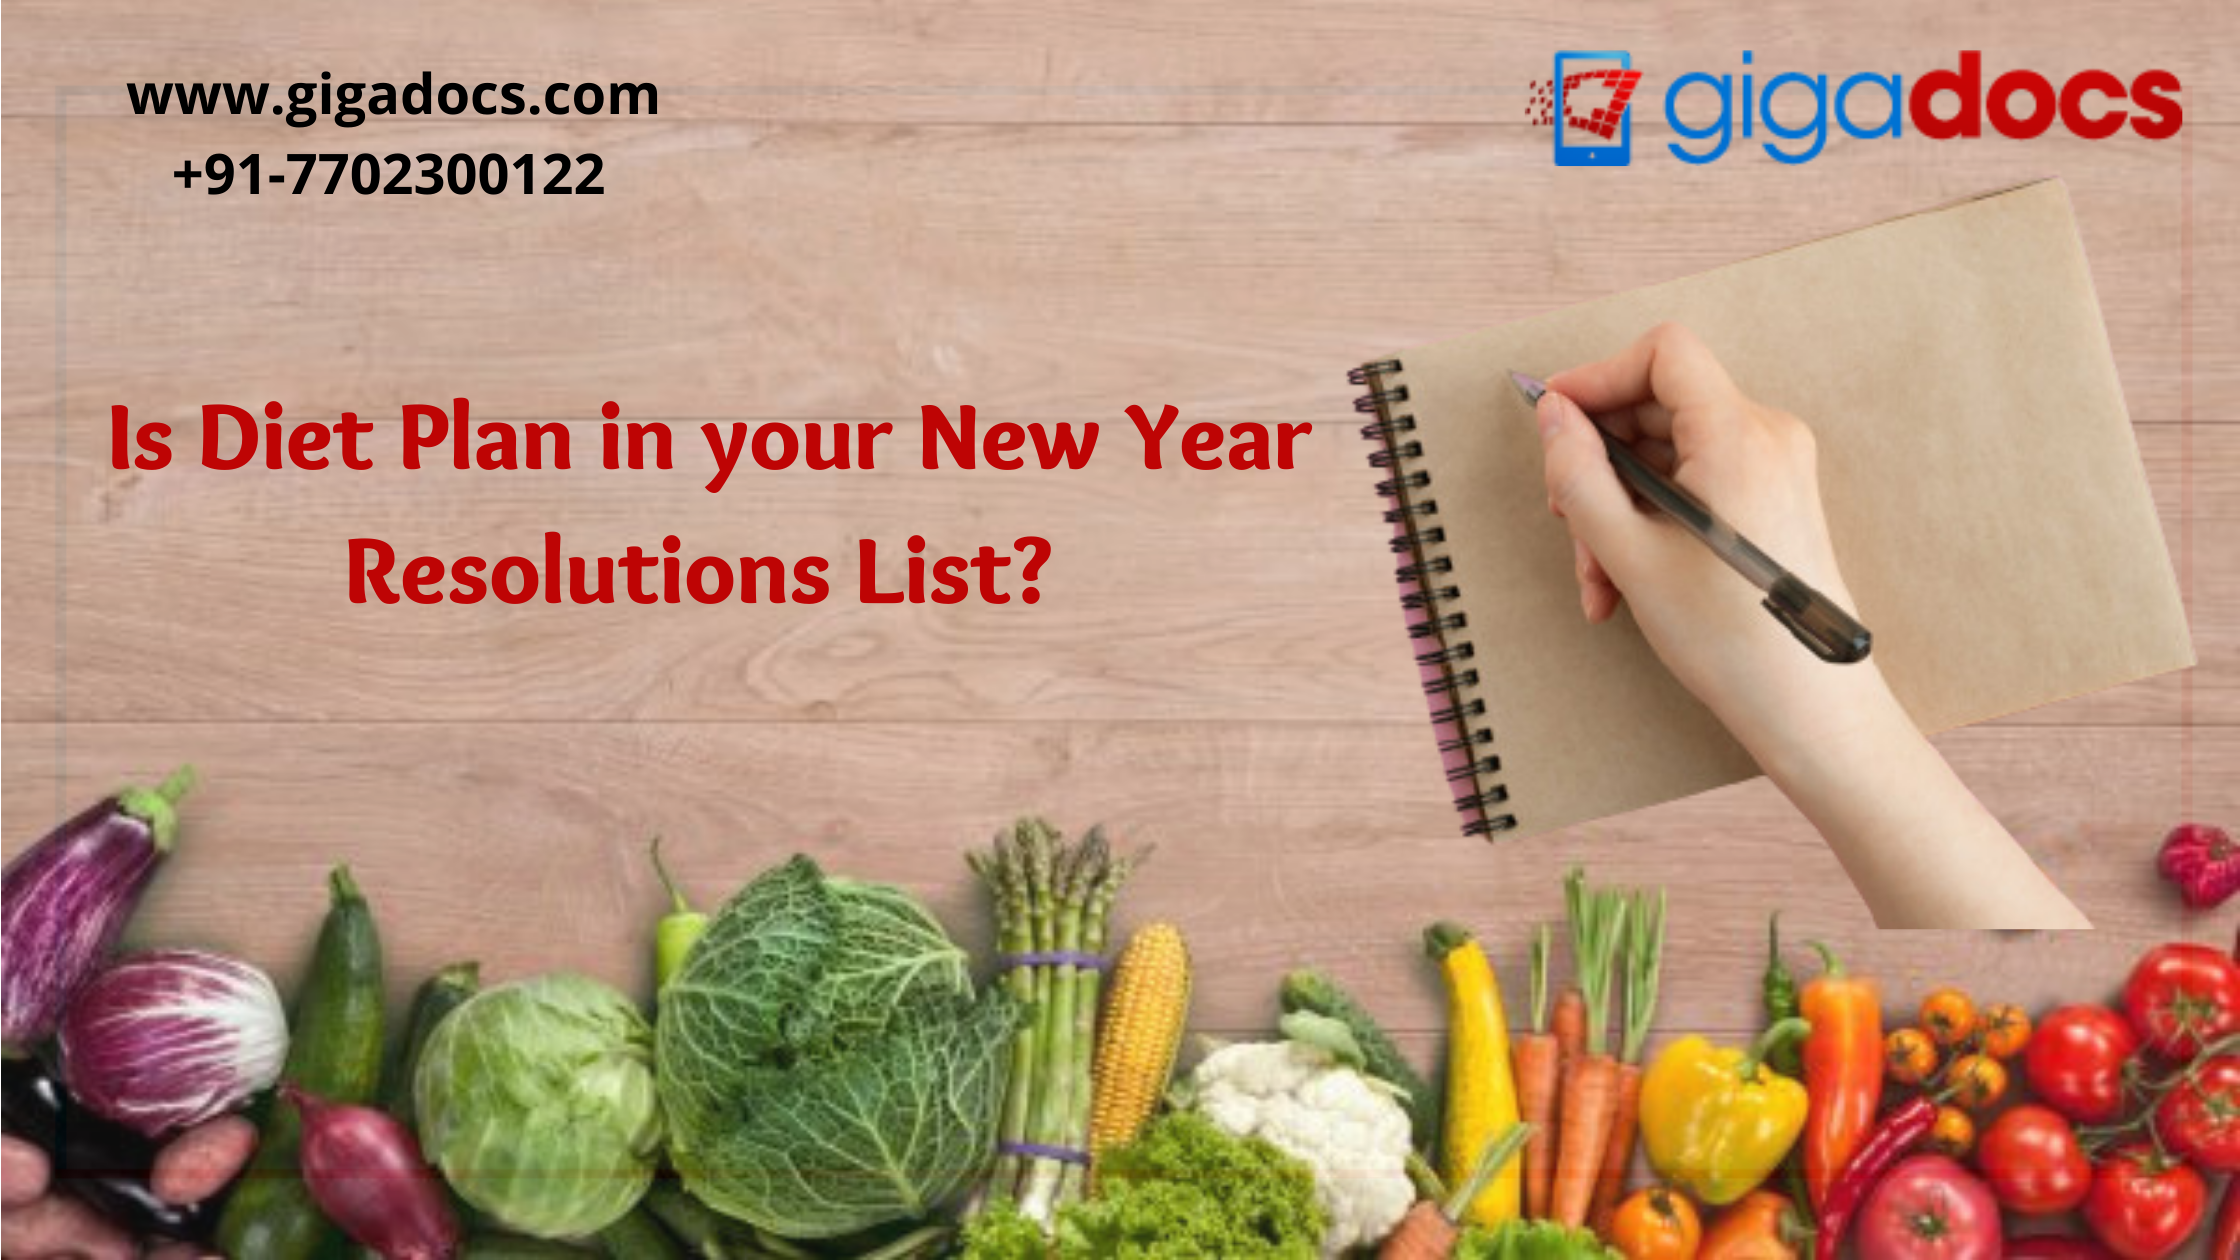 Is Diet Plan in your New Year Resolutions List?